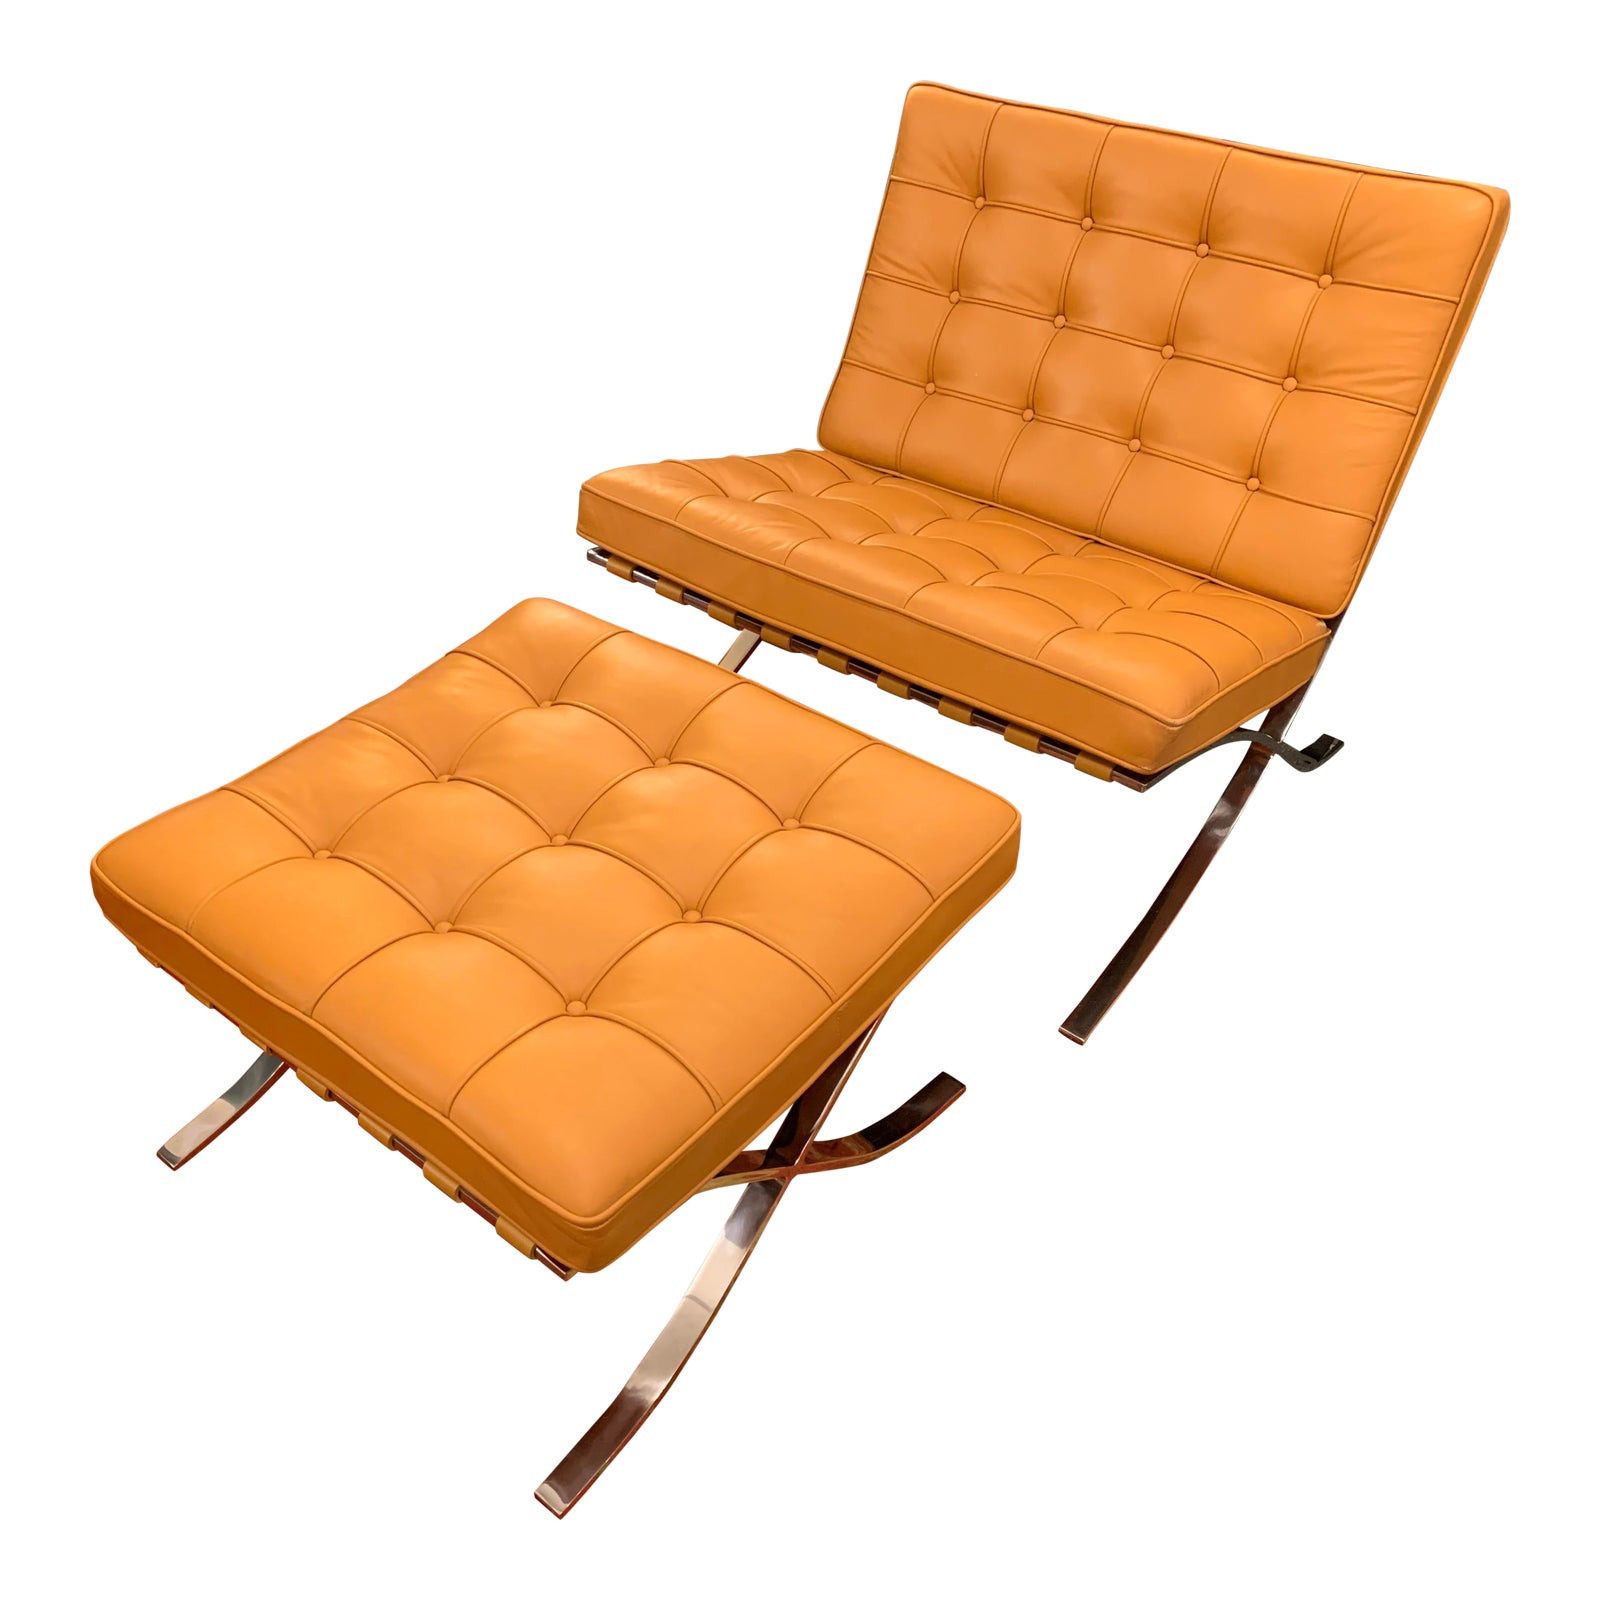 Picture of: Knoll Studio Volo Tan Leather Barcelona Chair And Ottoman Original Price 9 176 Design Plus Gallery